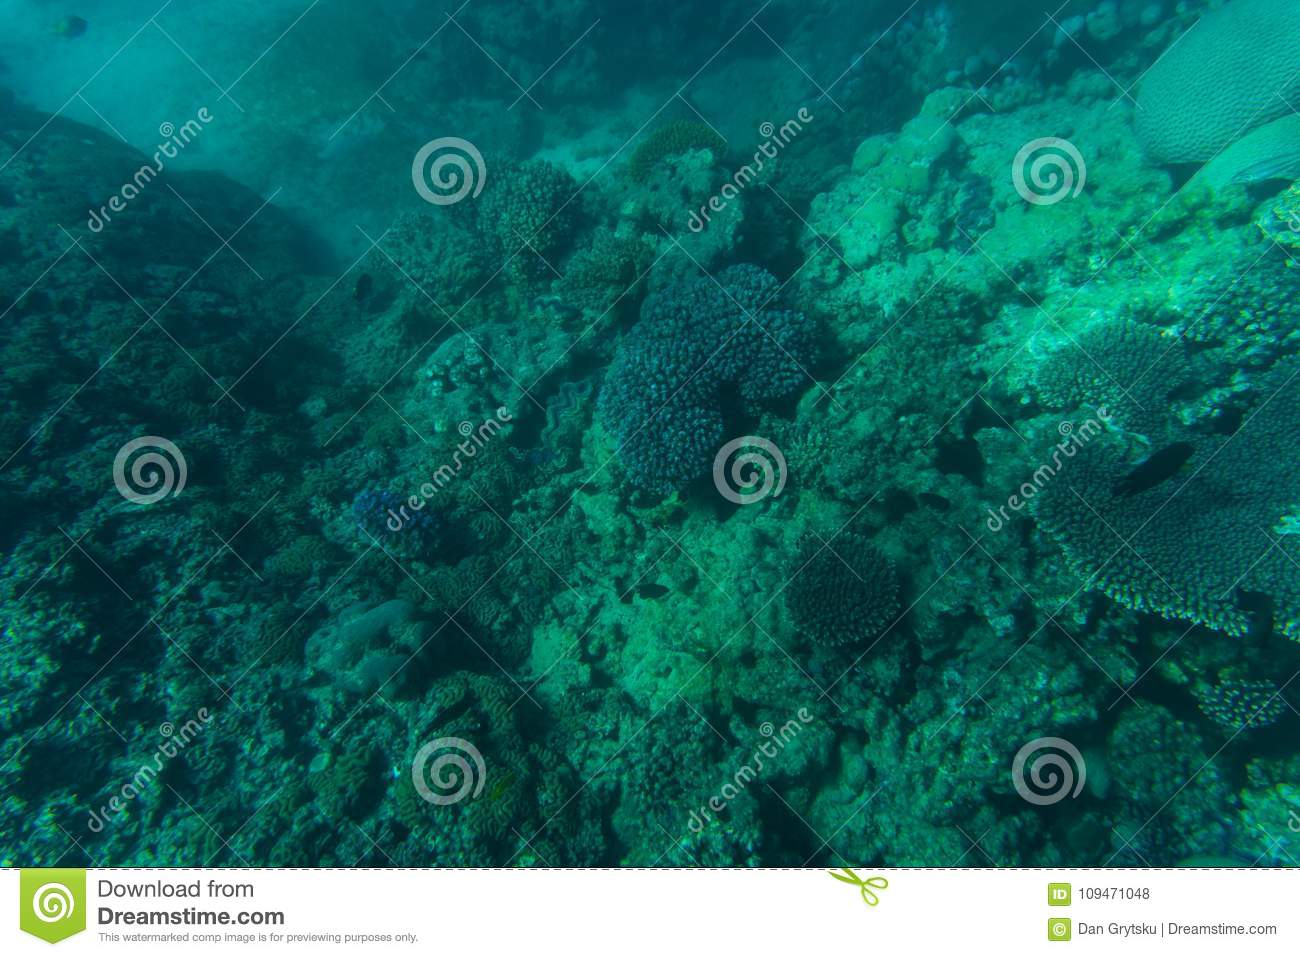 Snorcheling on a beautiful colorful coral reef in sea. Summer vocation.